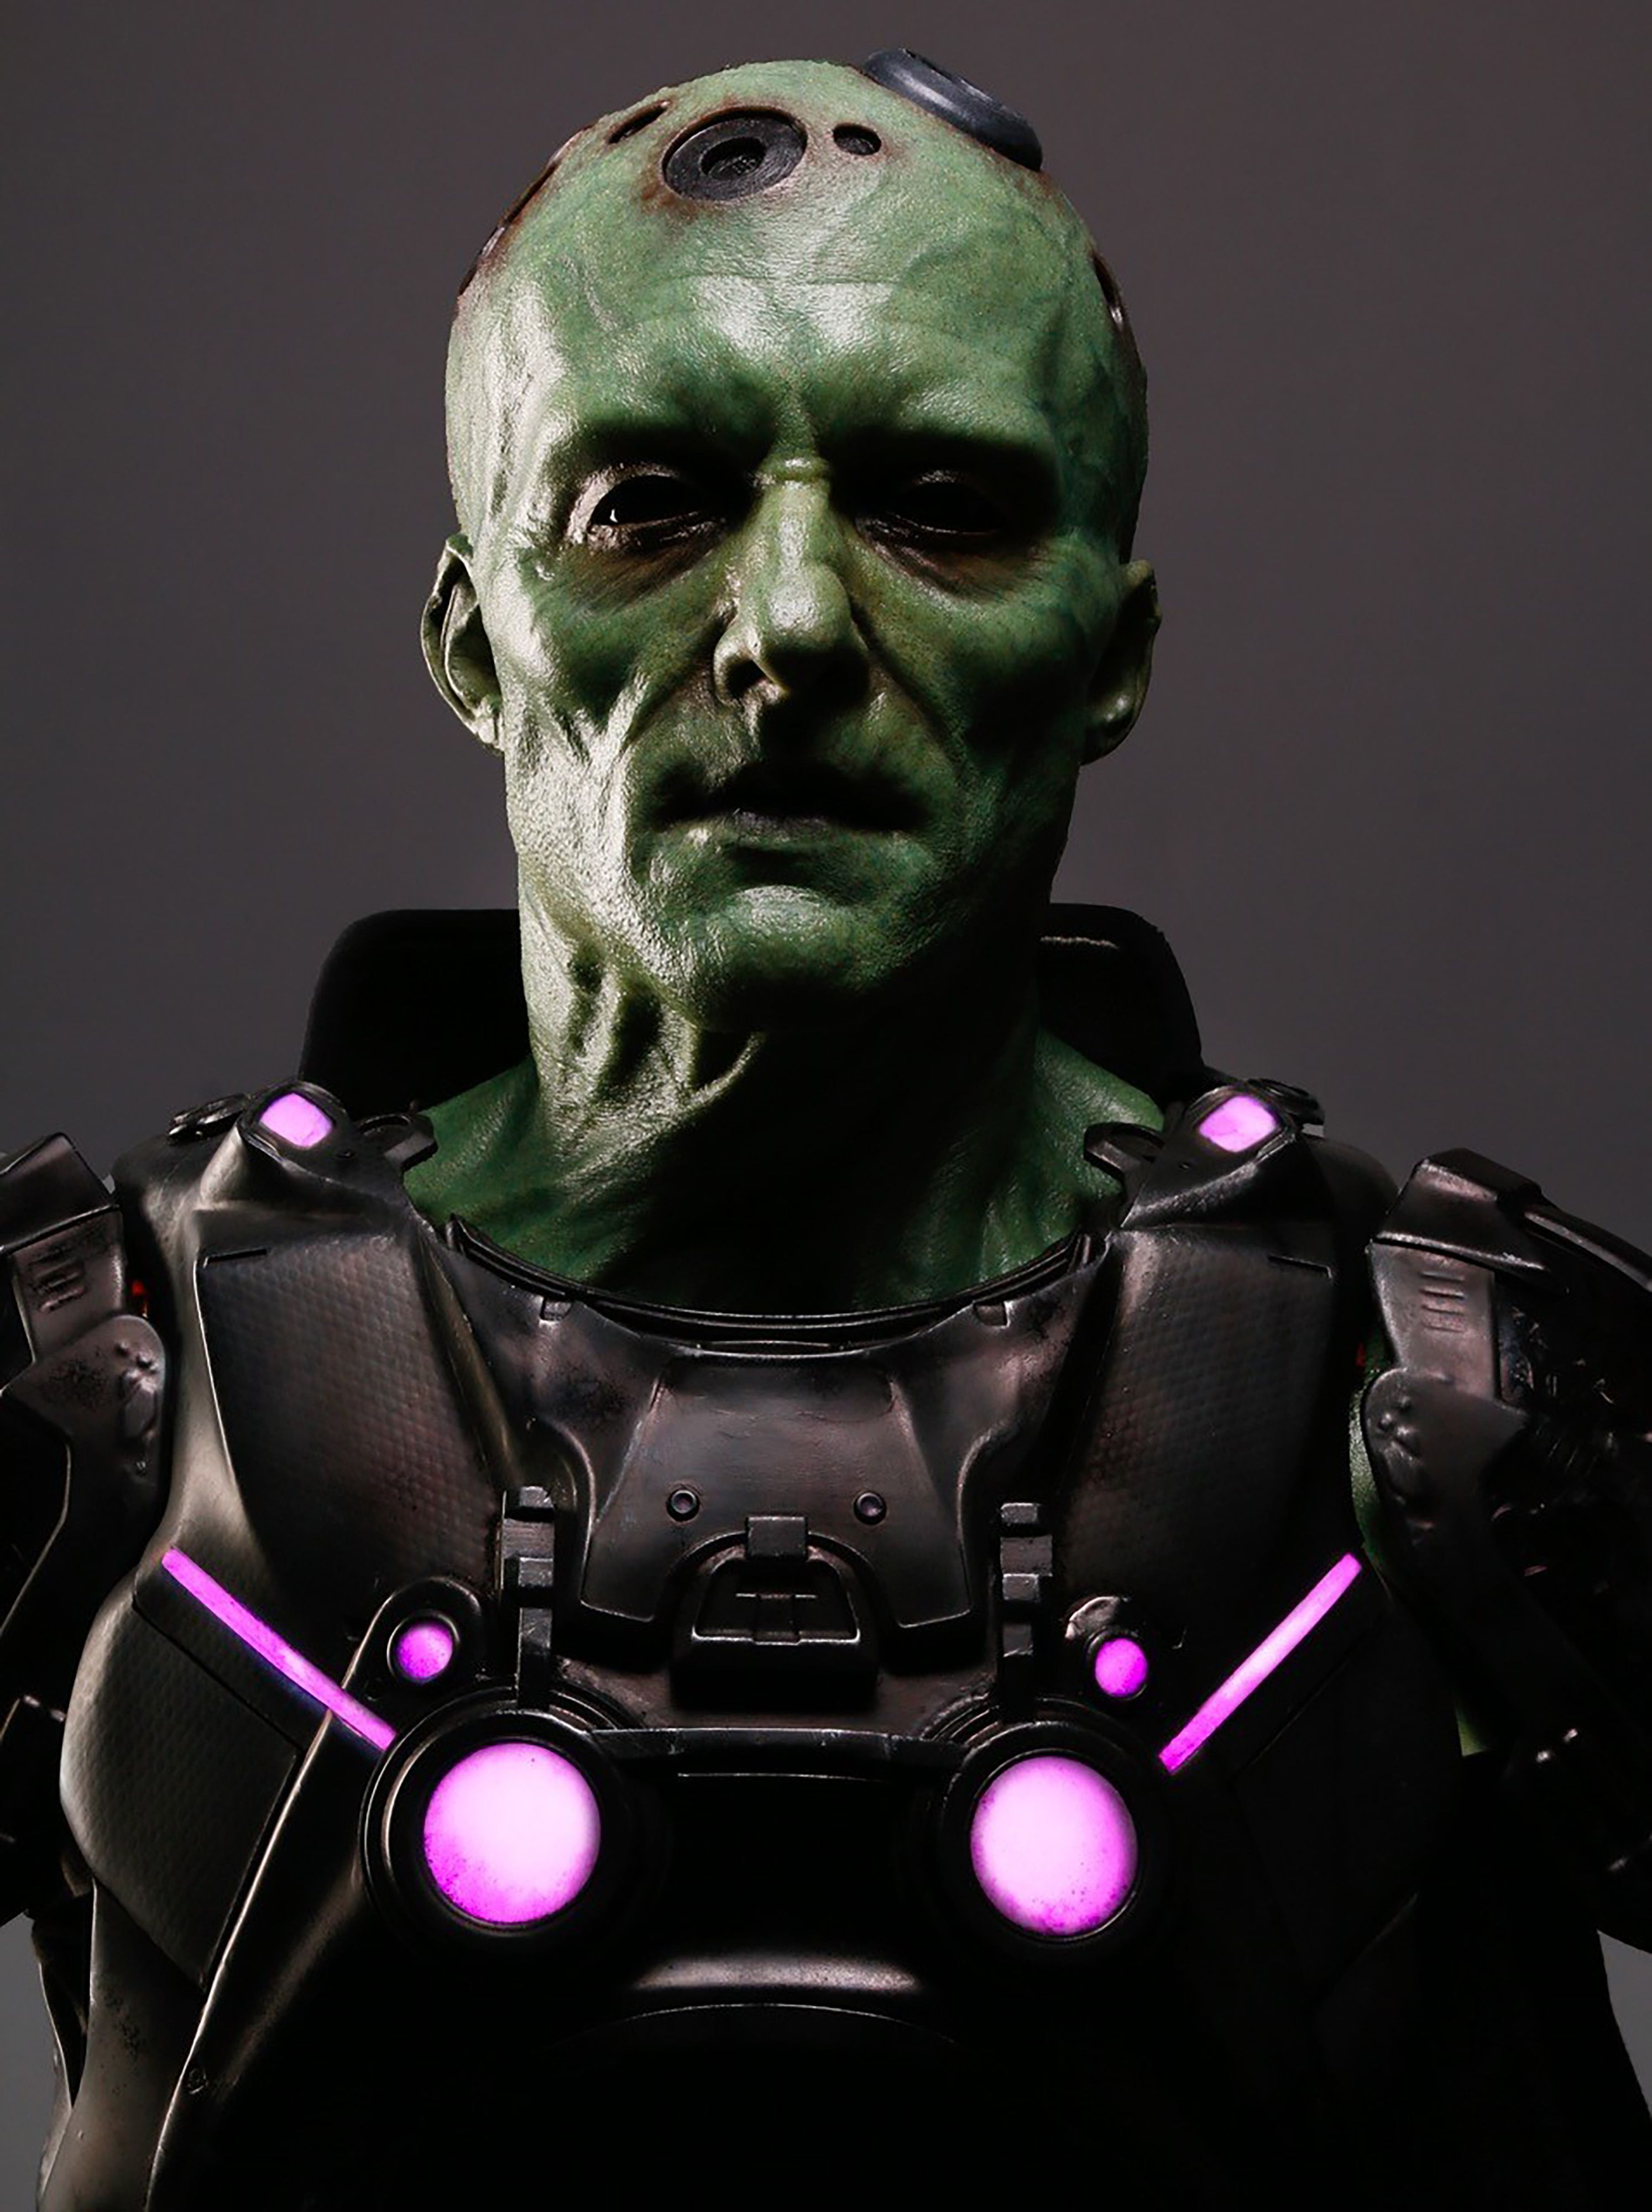 Brainiac Krypton TV series